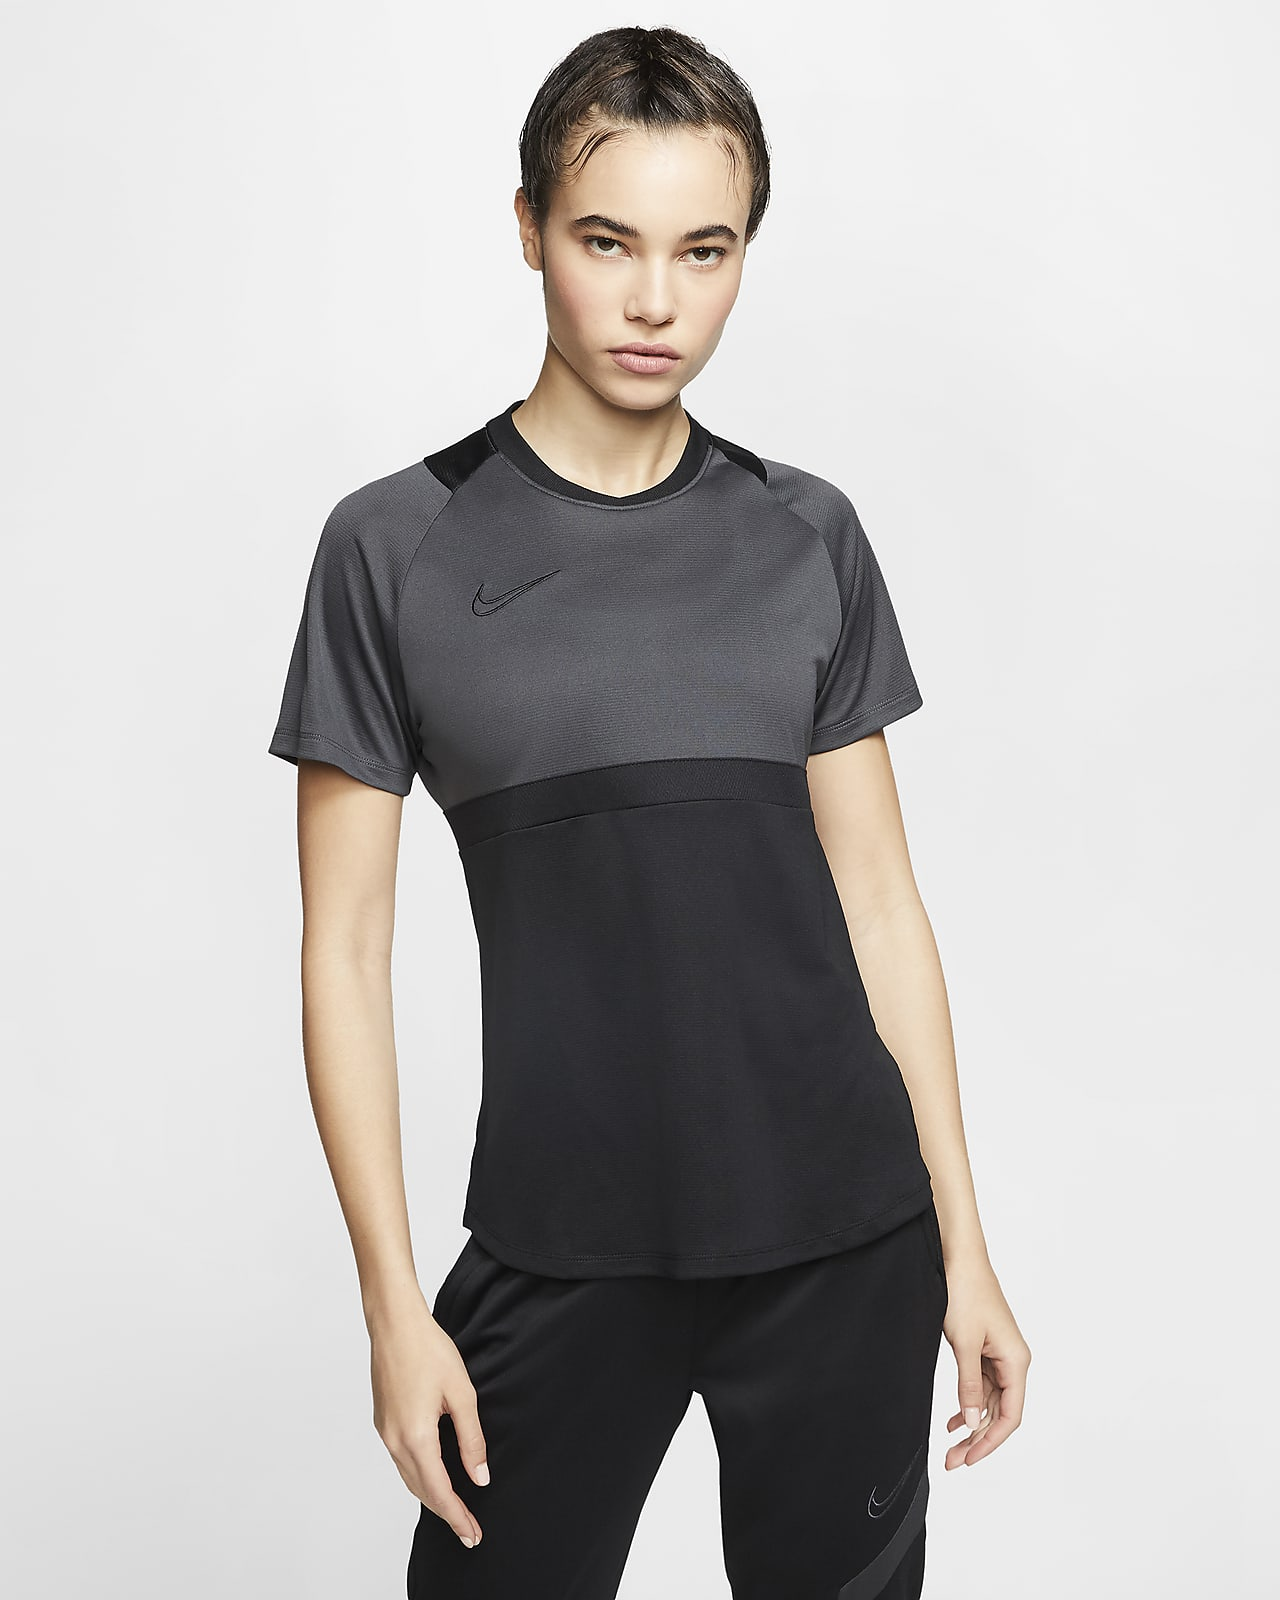 Nike Dri-FIT Academy Women's Short-Sleeve Football Top